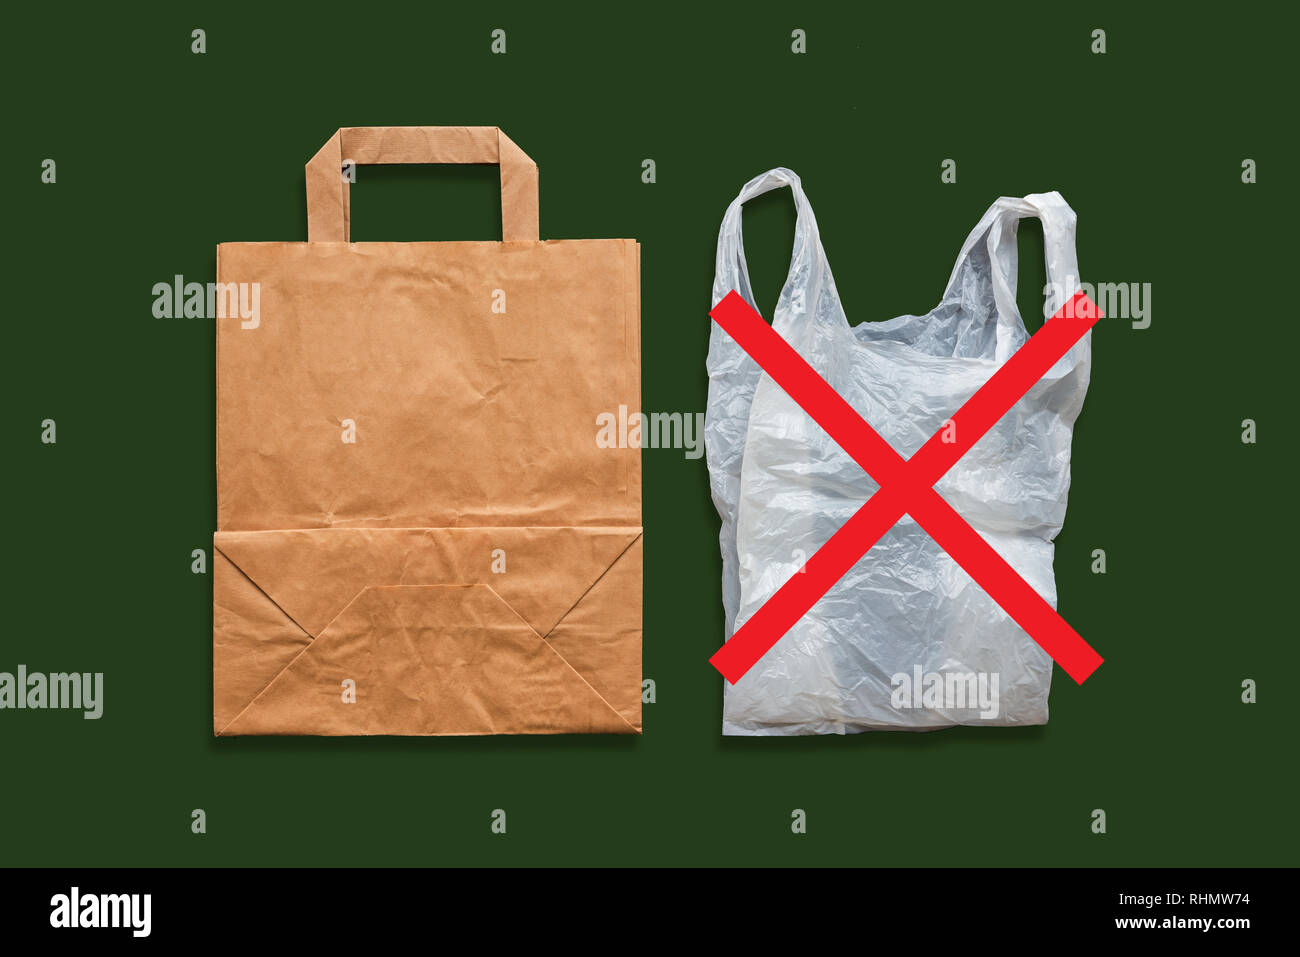 Paper and plastic bag on a dark background. Say No to plastic bags. The concept of choice without plastic or environmental problems. - Stock Image